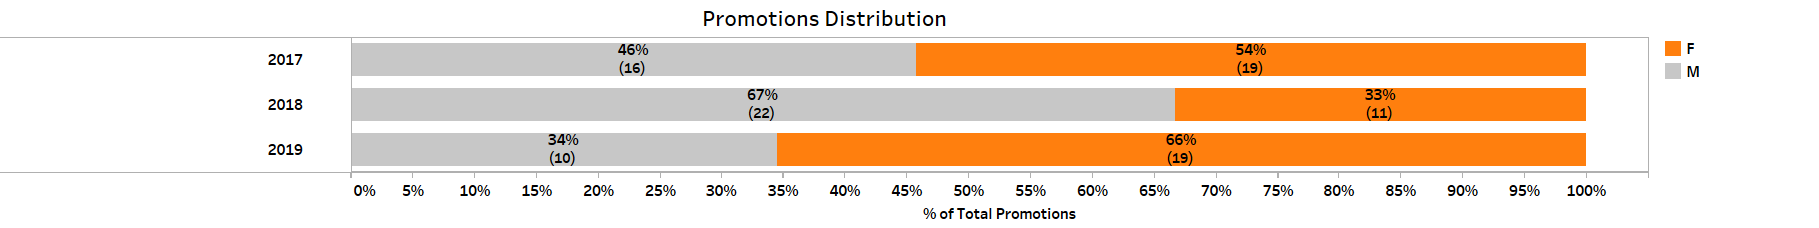 Promotions Distribution